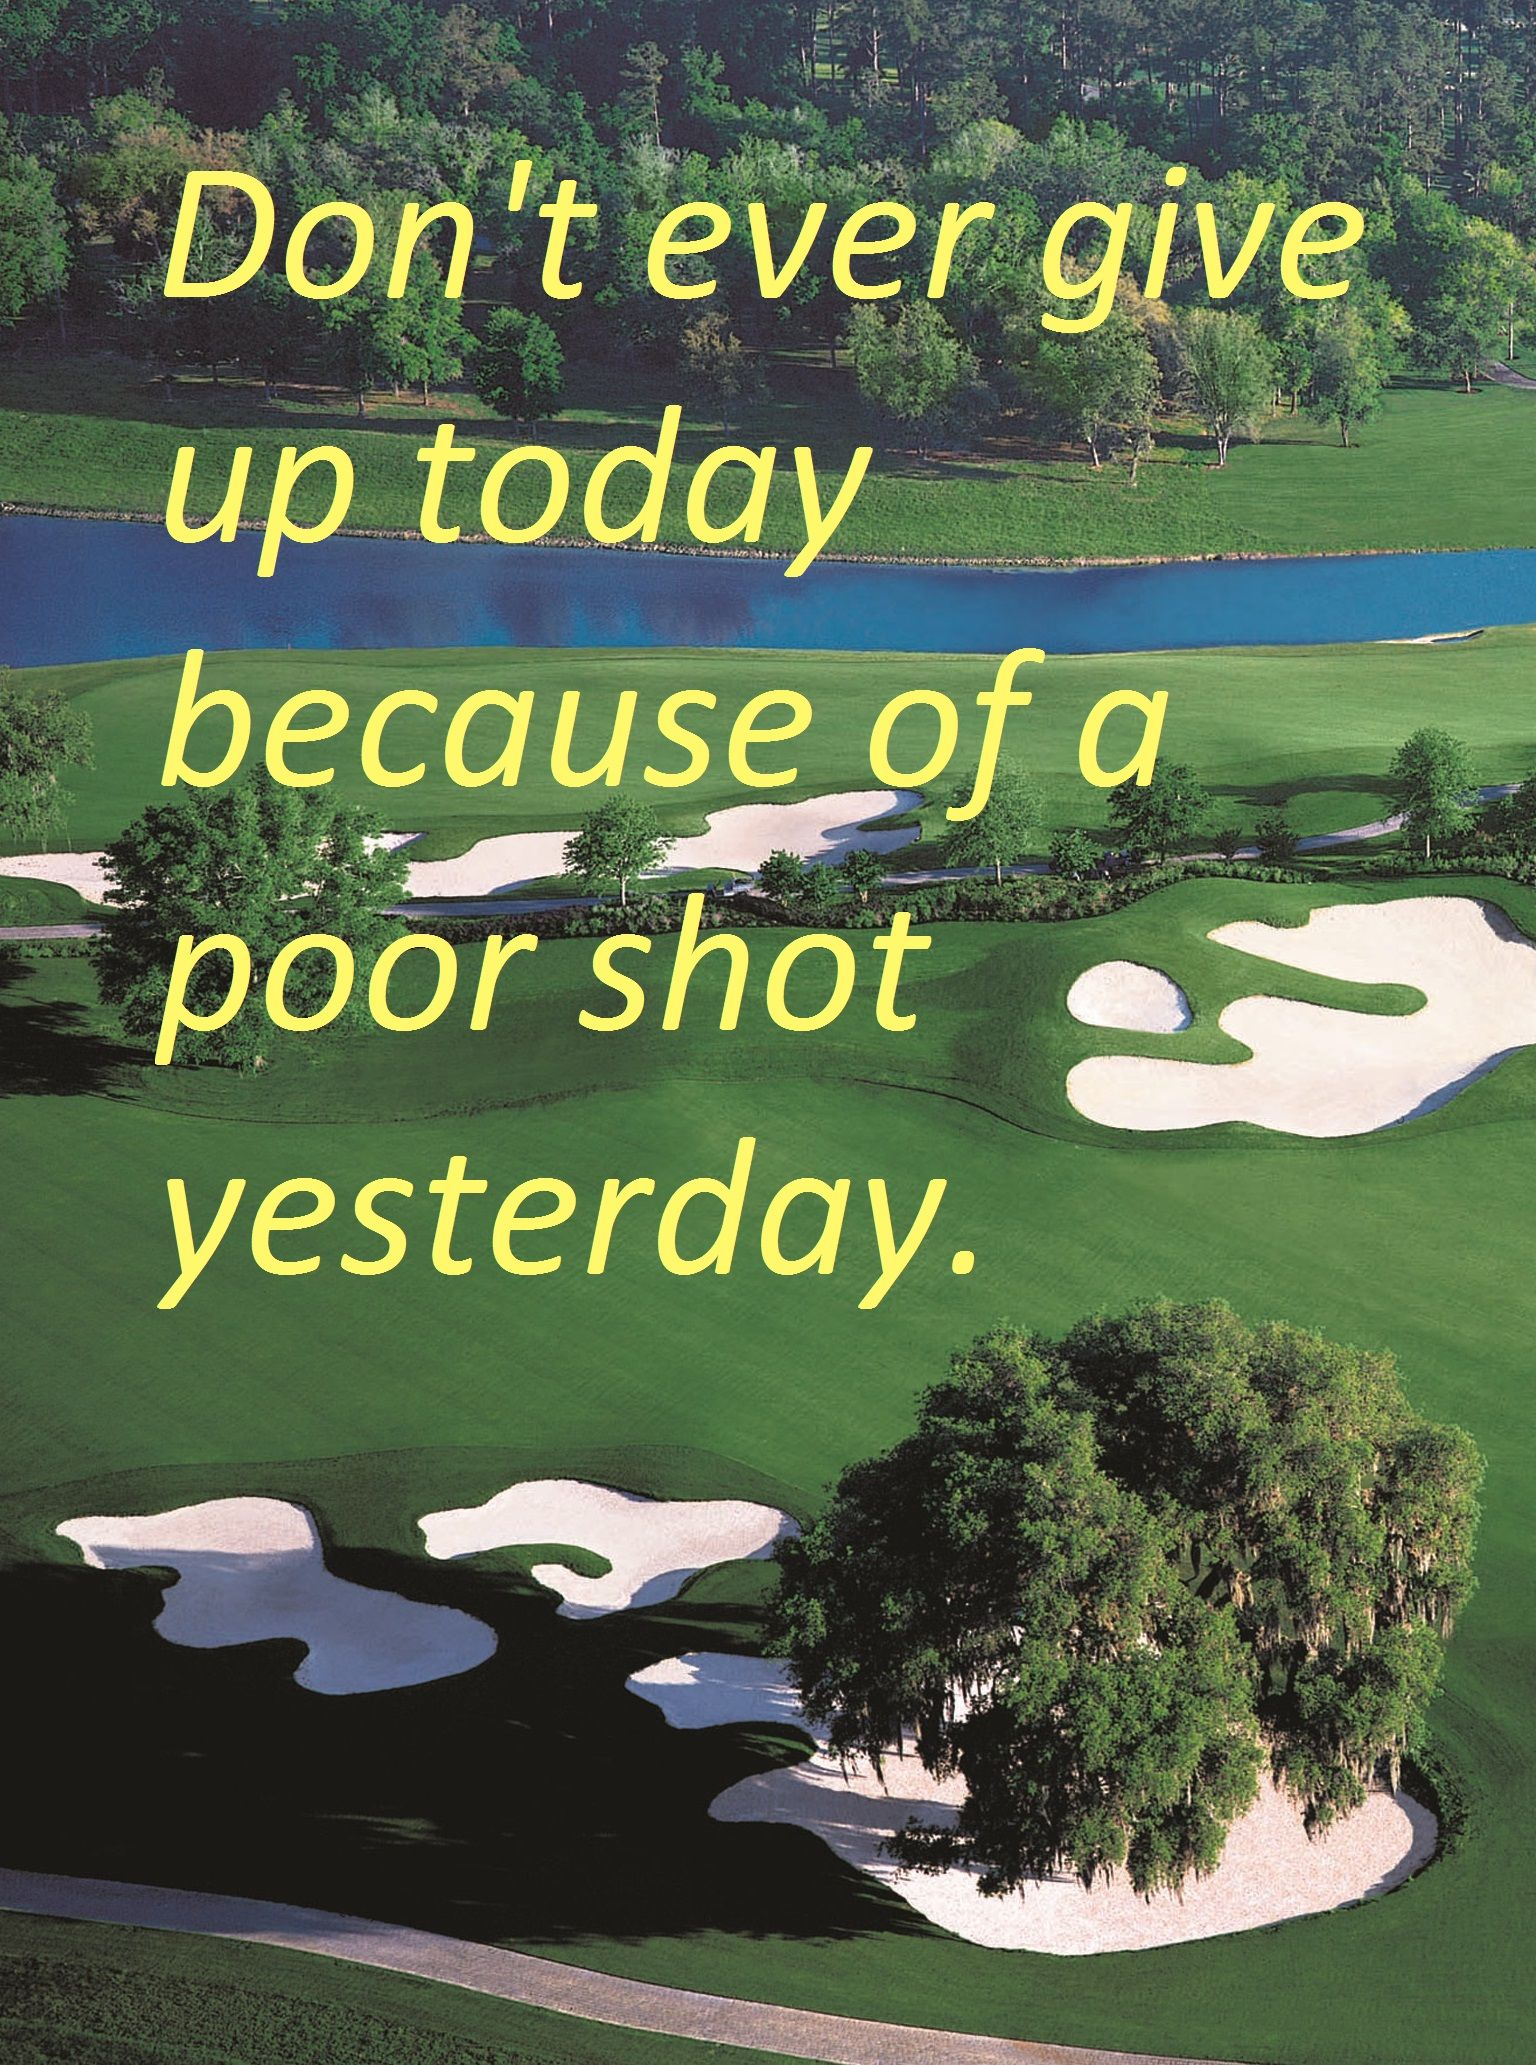 Inspirational Golf Quotes Don't Ever Give Up Today Because Of A Poor Shot Yesterday Golf